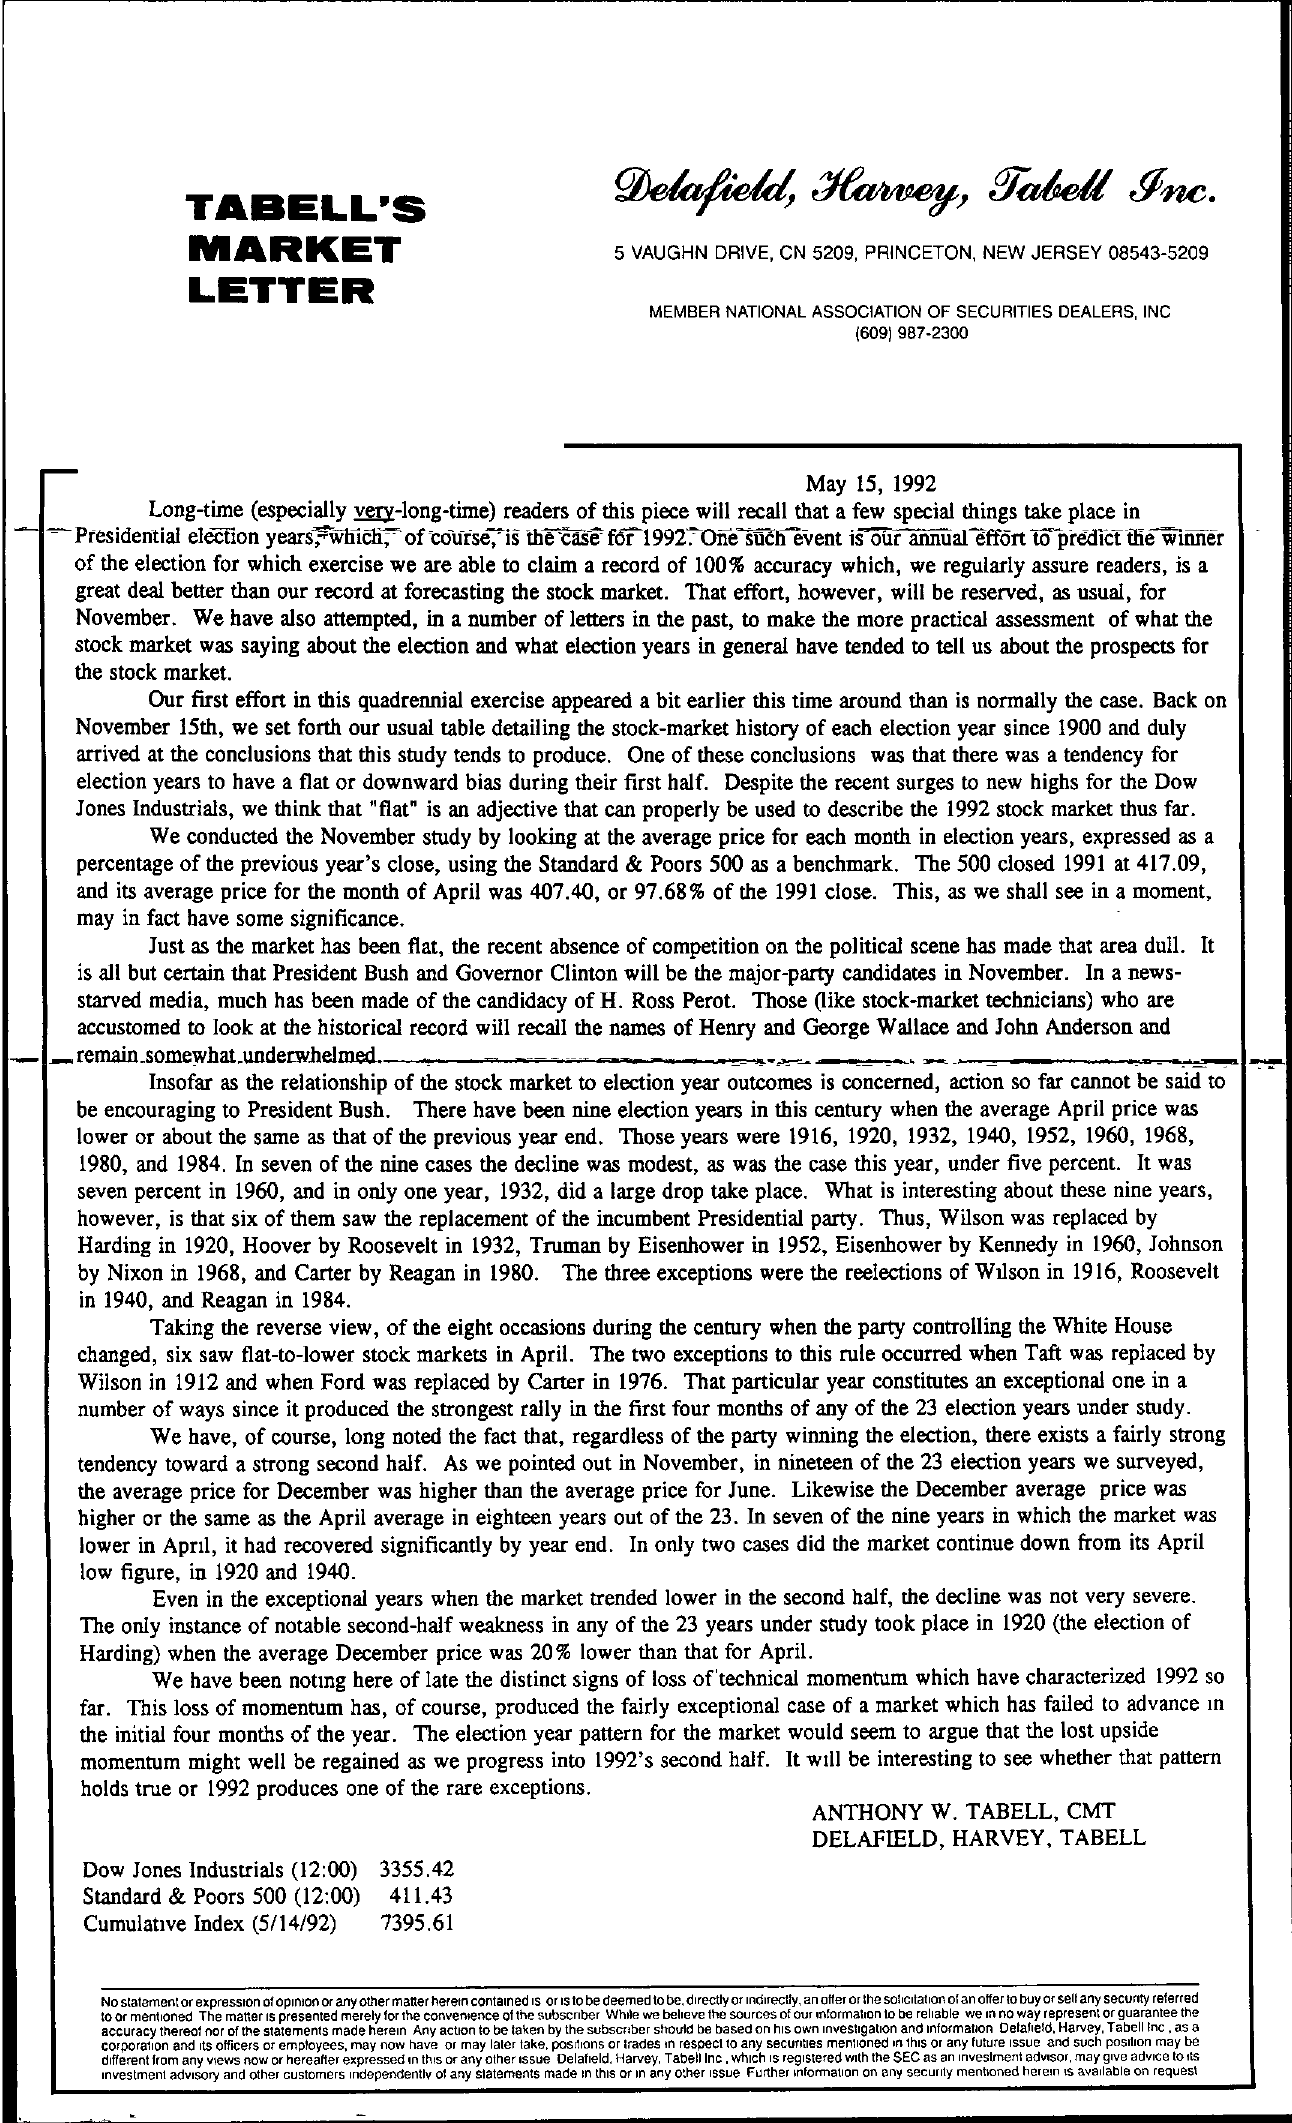 Tabell's Market Letter - May 15, 1992